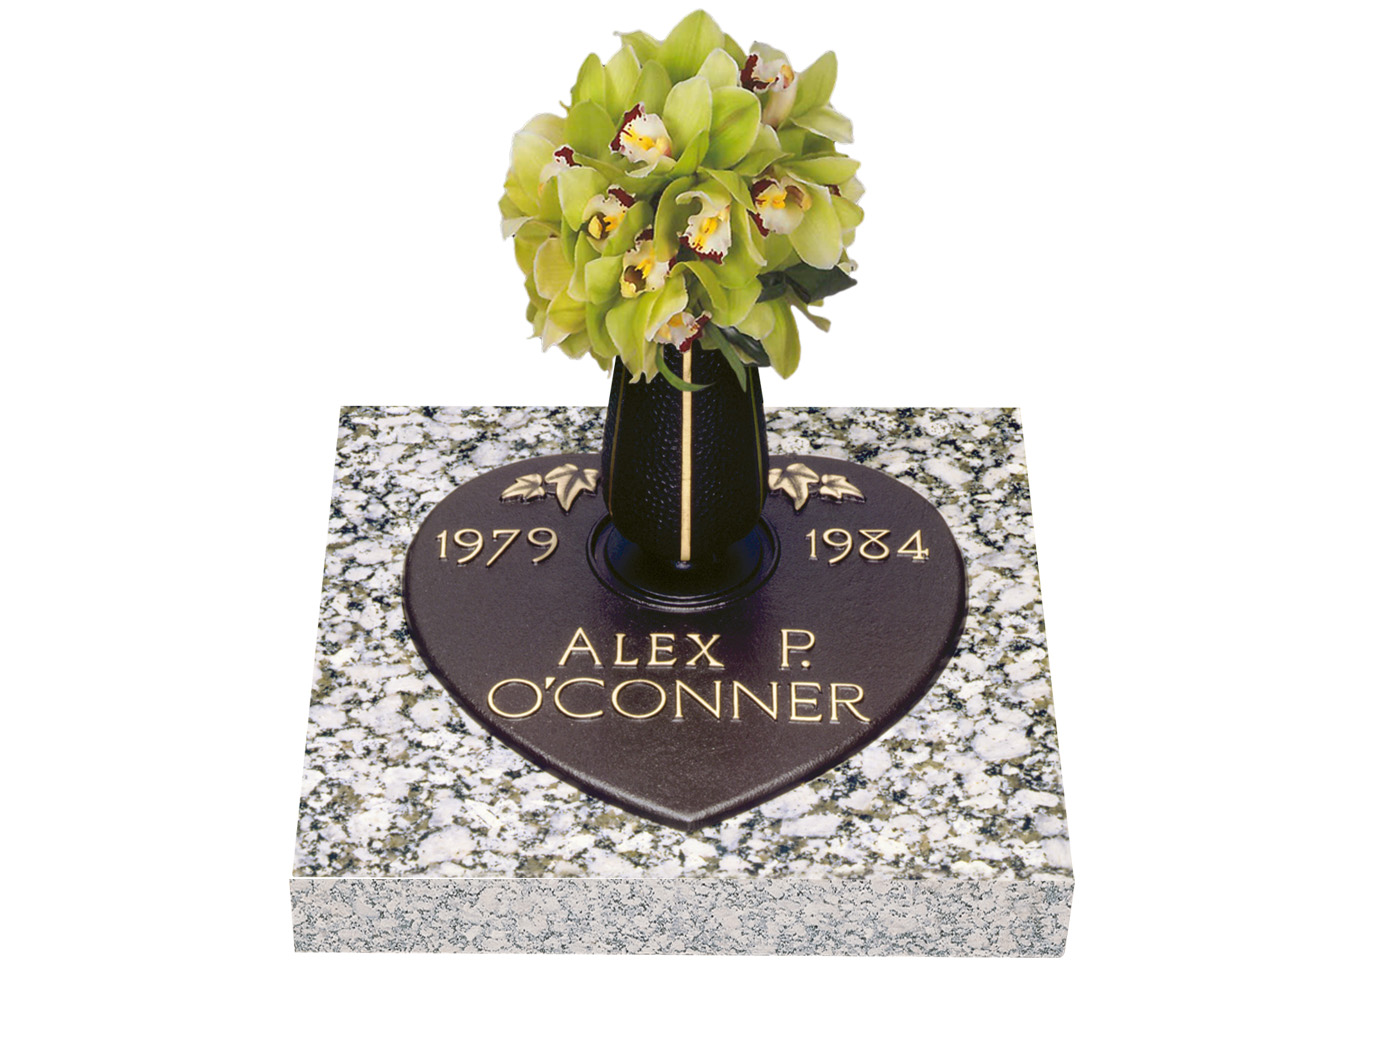 Infant bronze grave markers lovemarkers ivy heart with vase reviewsmspy